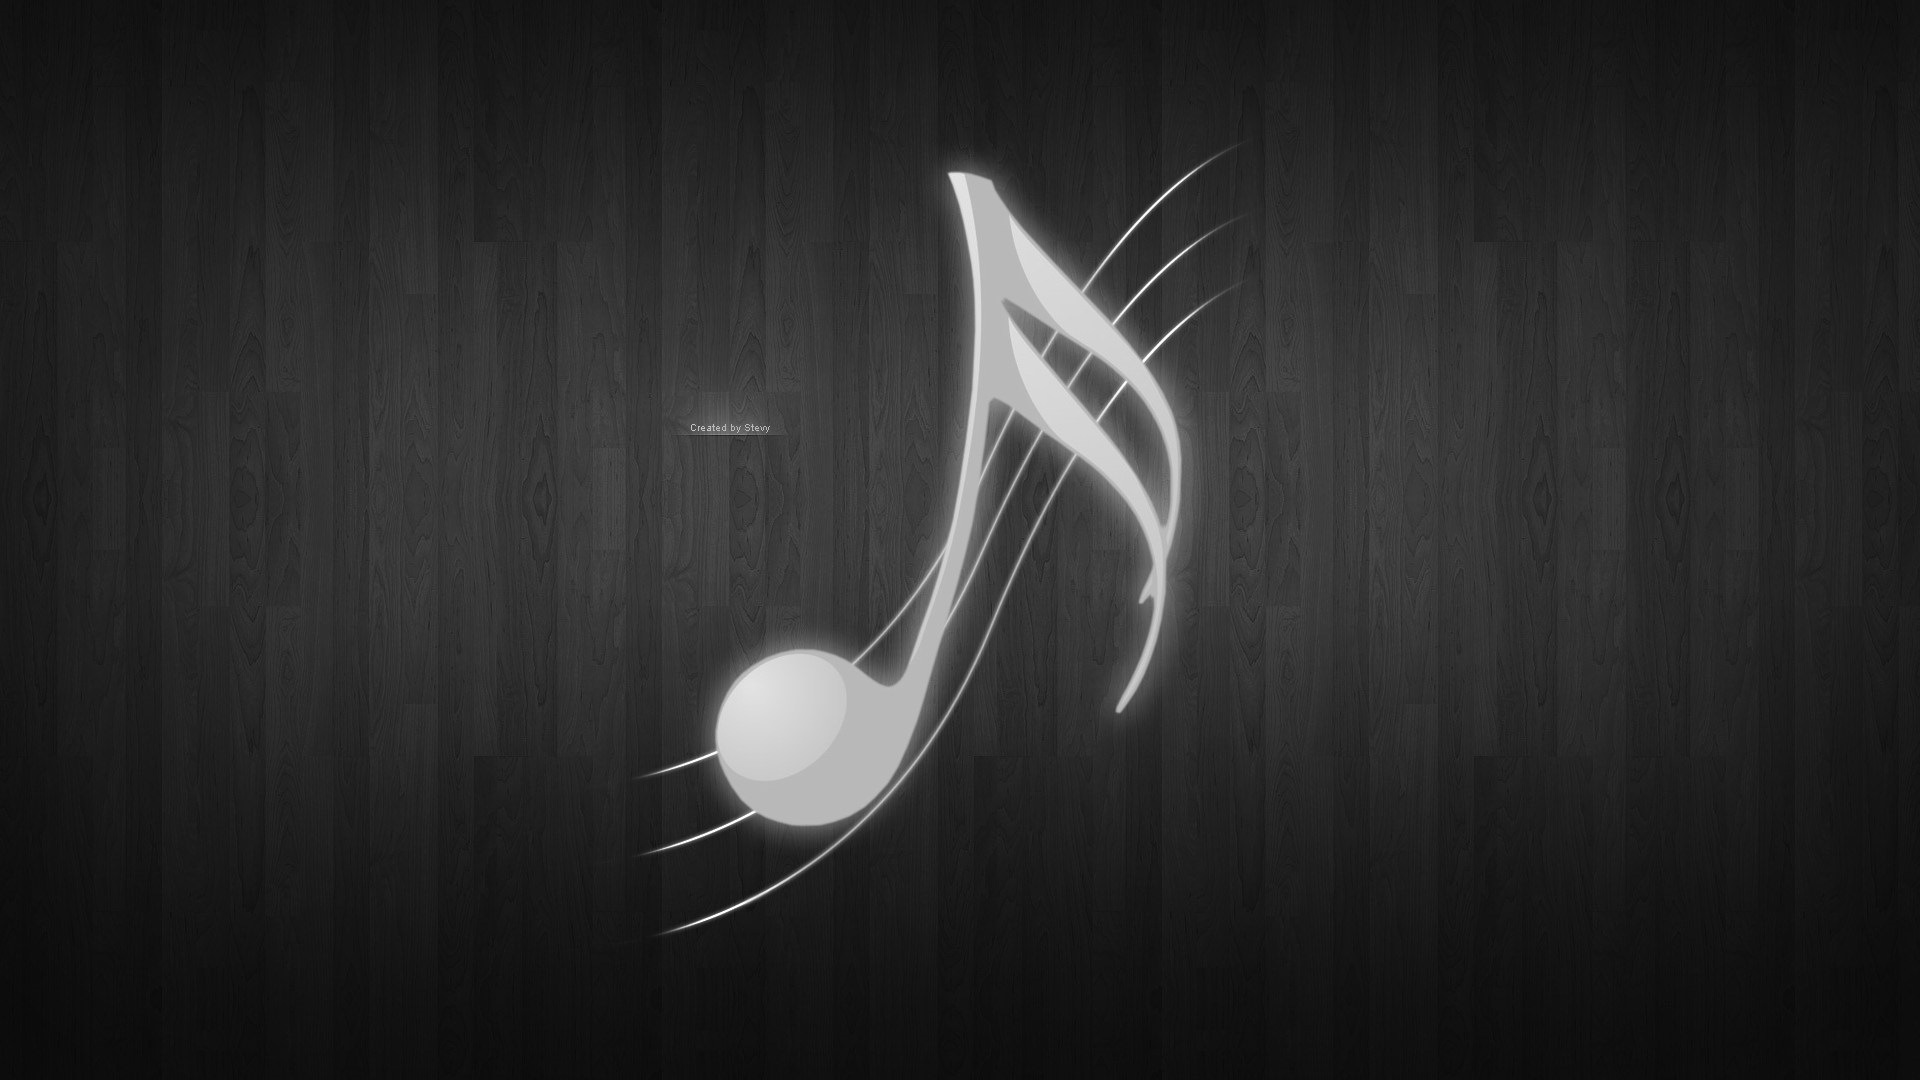 Music Wallpaper Download